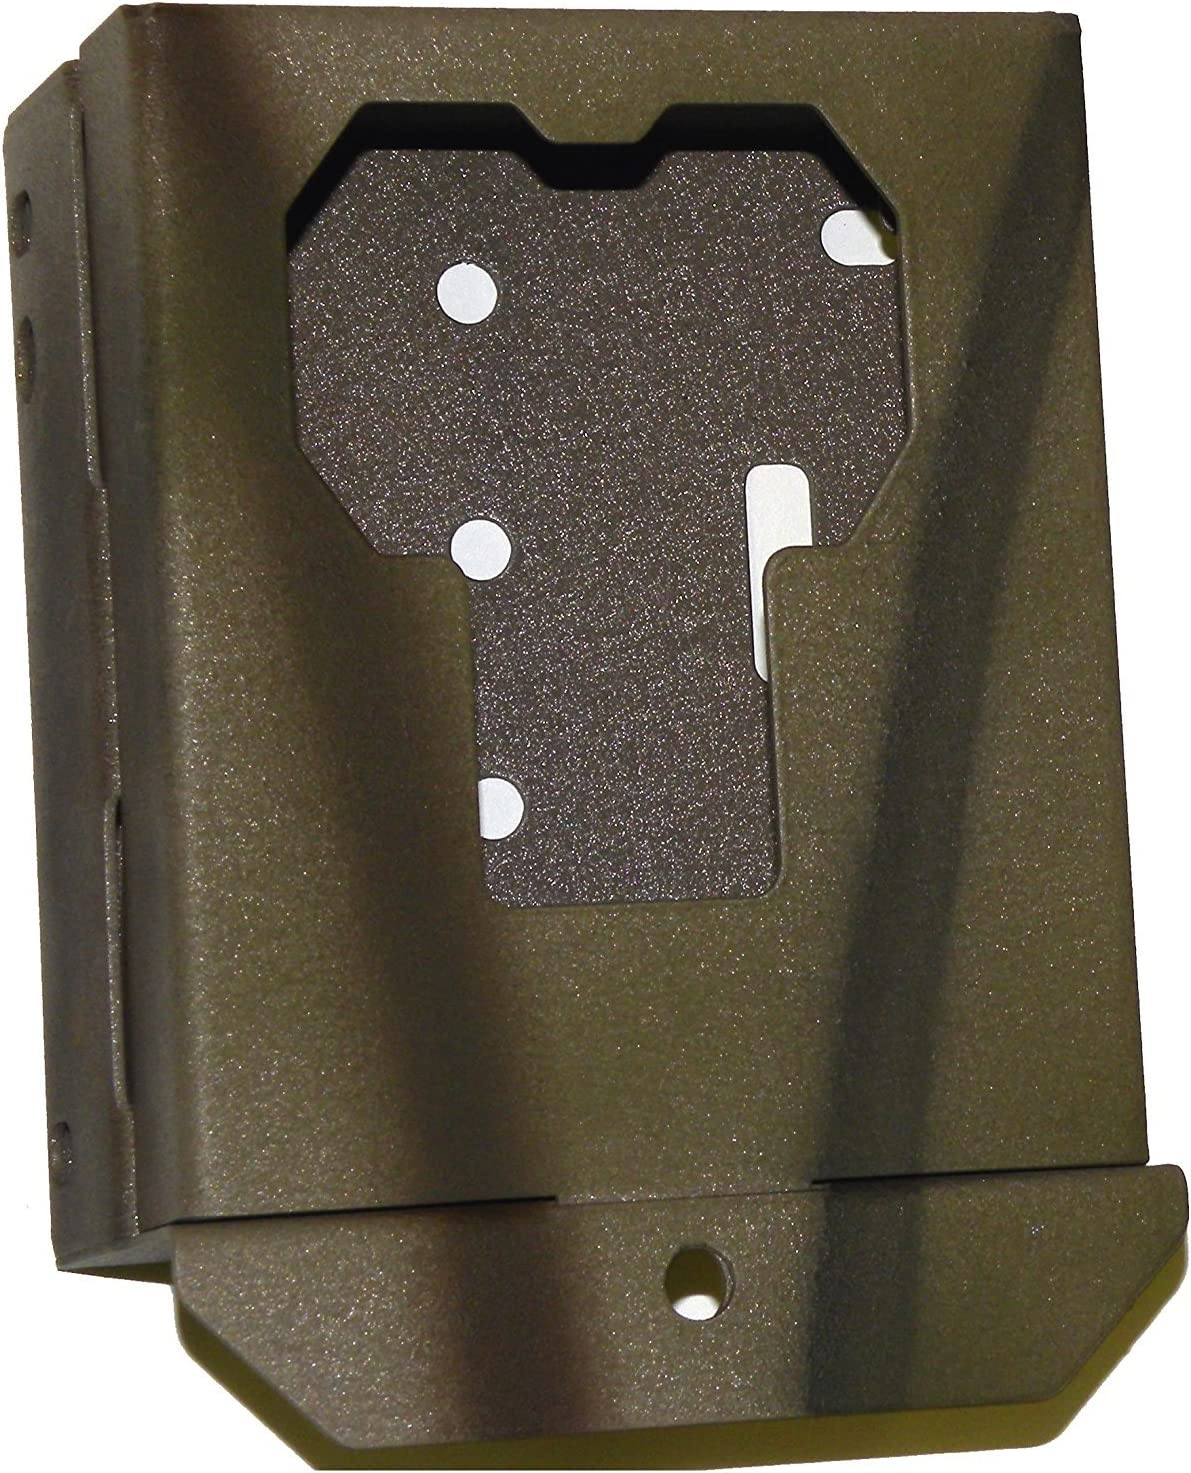 CAMLOCKbox Security Box Compatible with Stealth Cam G30 Game Camera